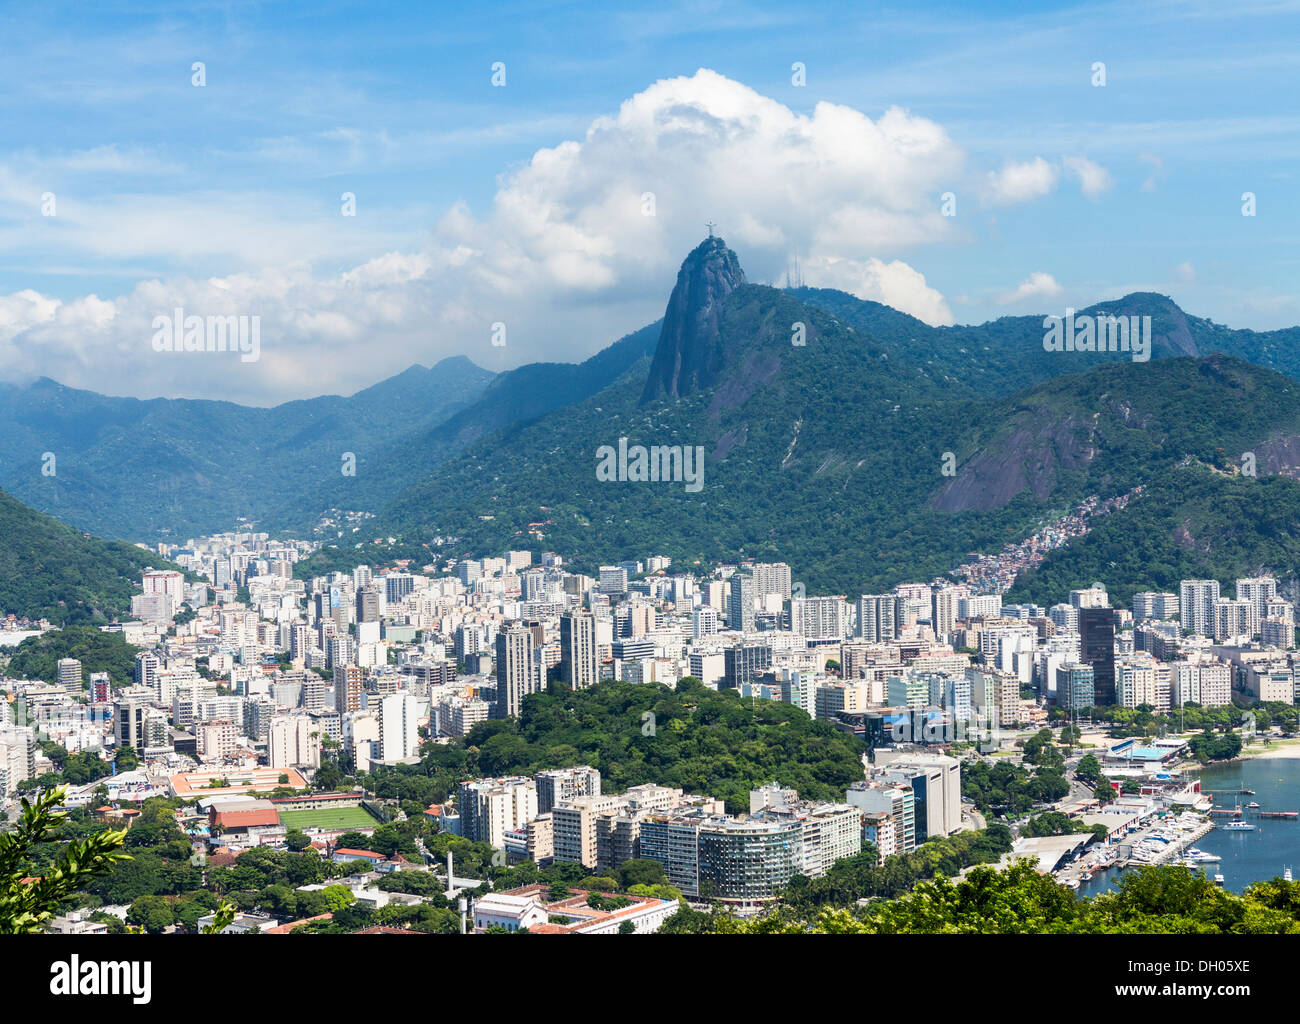 Rio de Janeiro city, Brazil - aerial from Sugarloaf Mountain; Christ the Redeemer statue on Corcovado mountain in - Stock Image